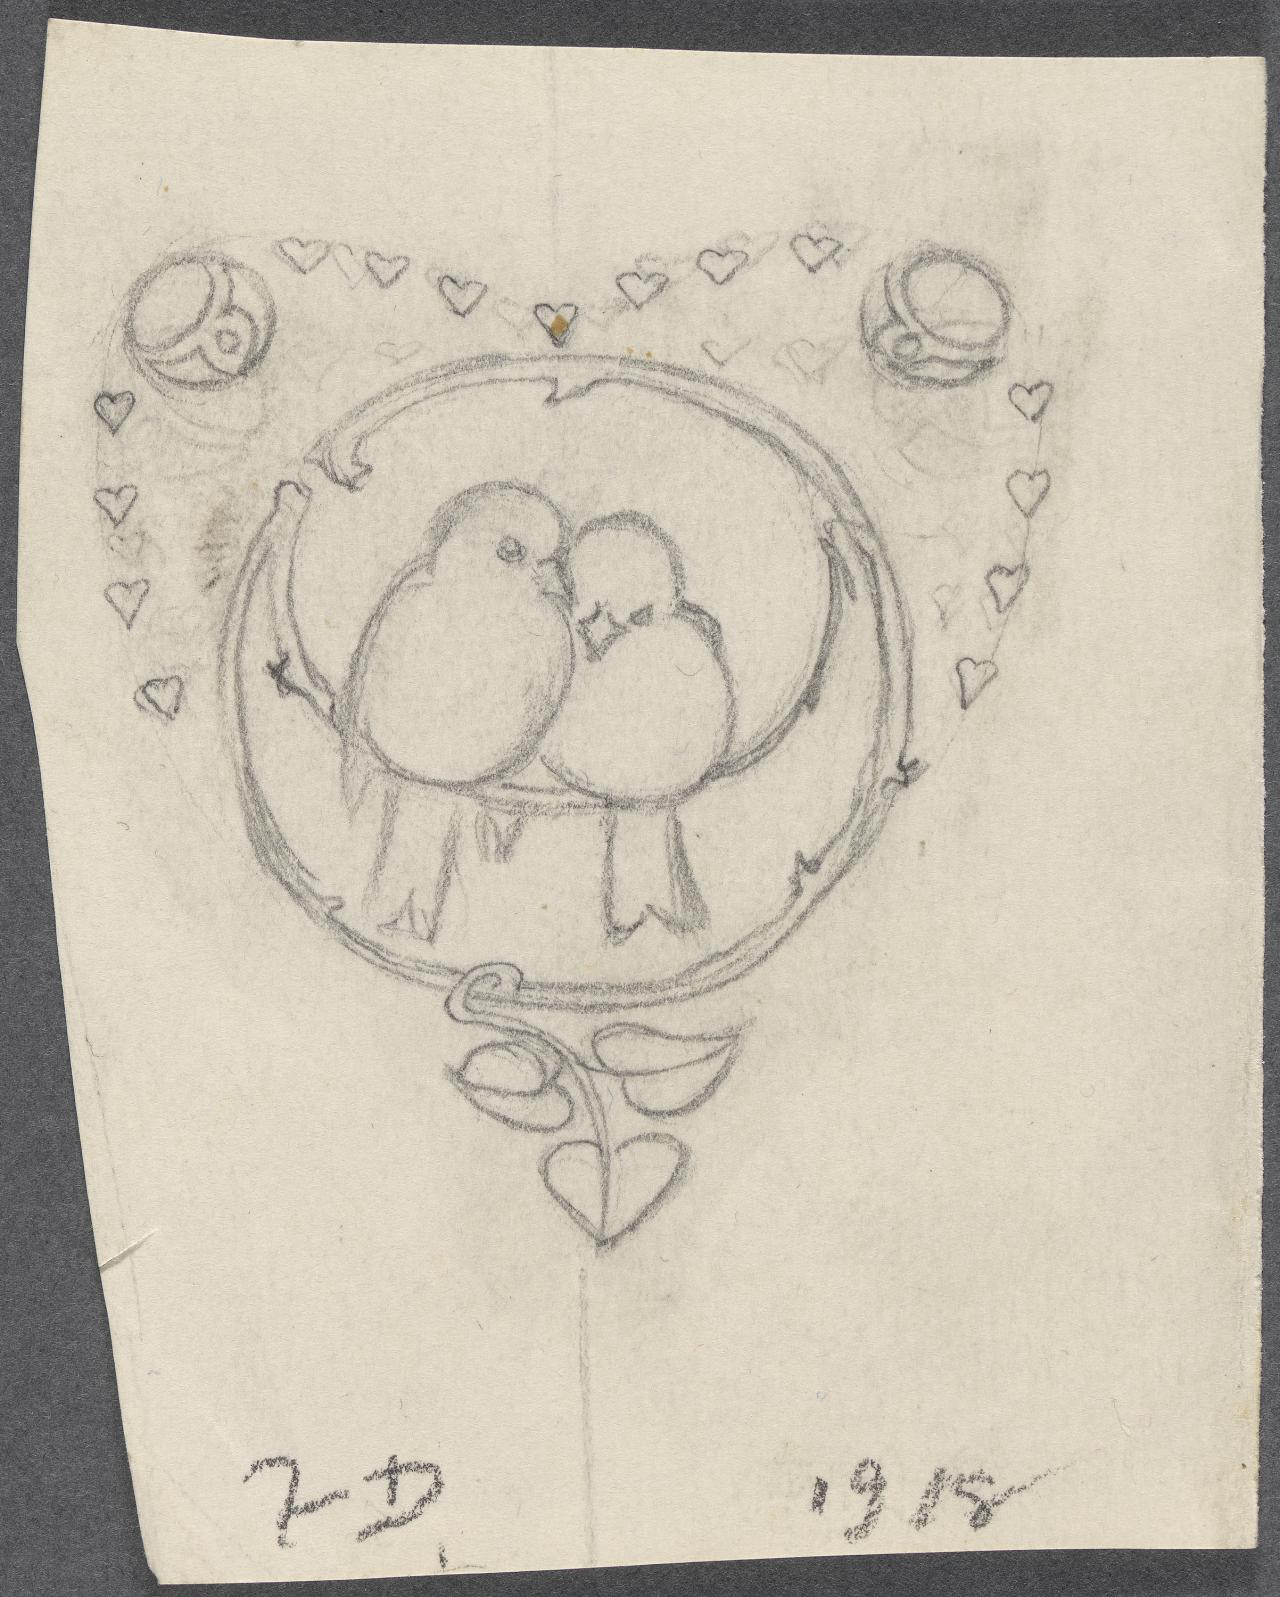 Motif of lovebirds